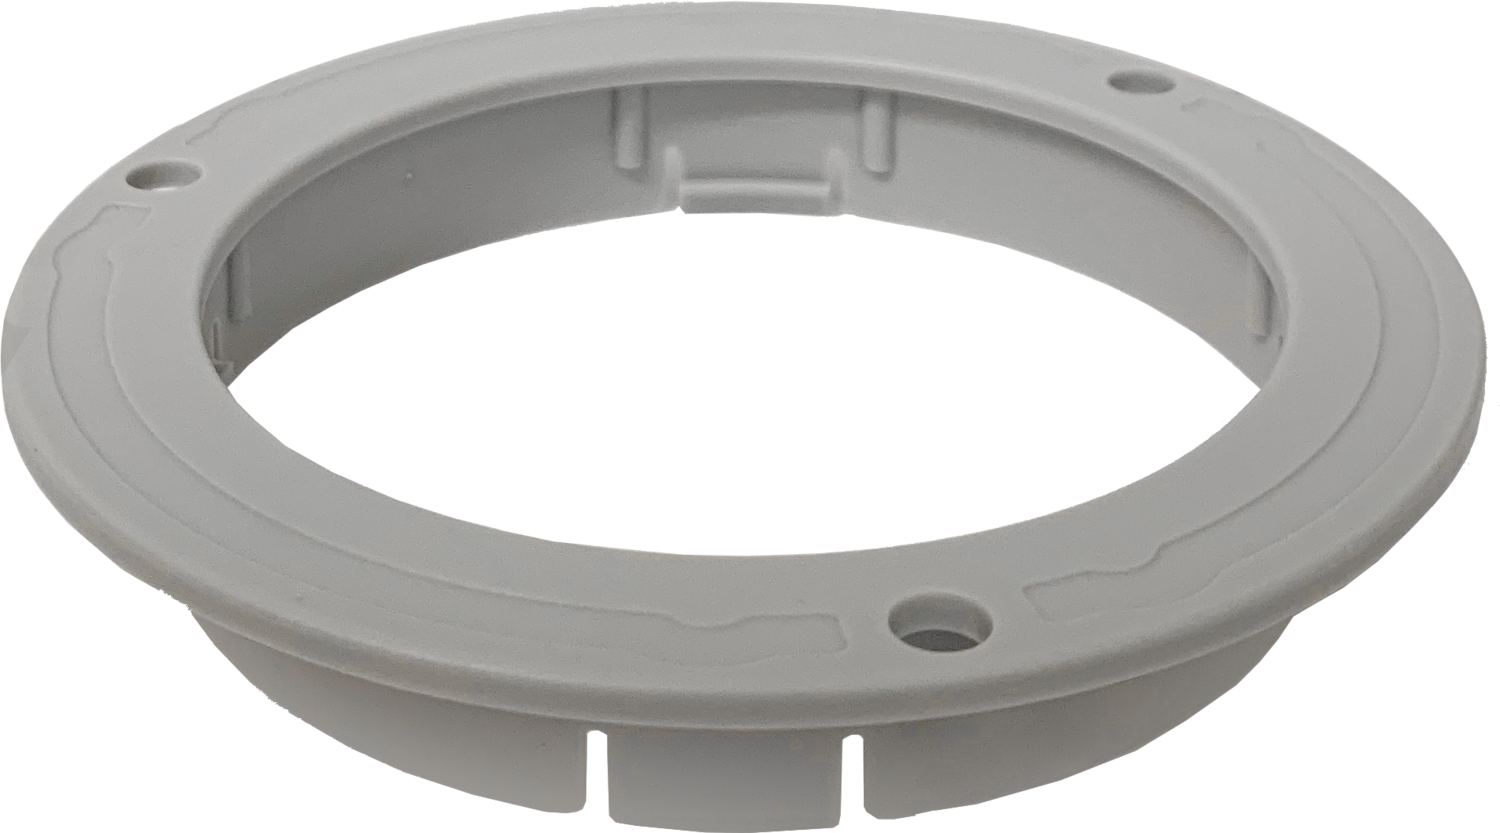 Plastic Retaining Flange for TrackLight (LA17081)